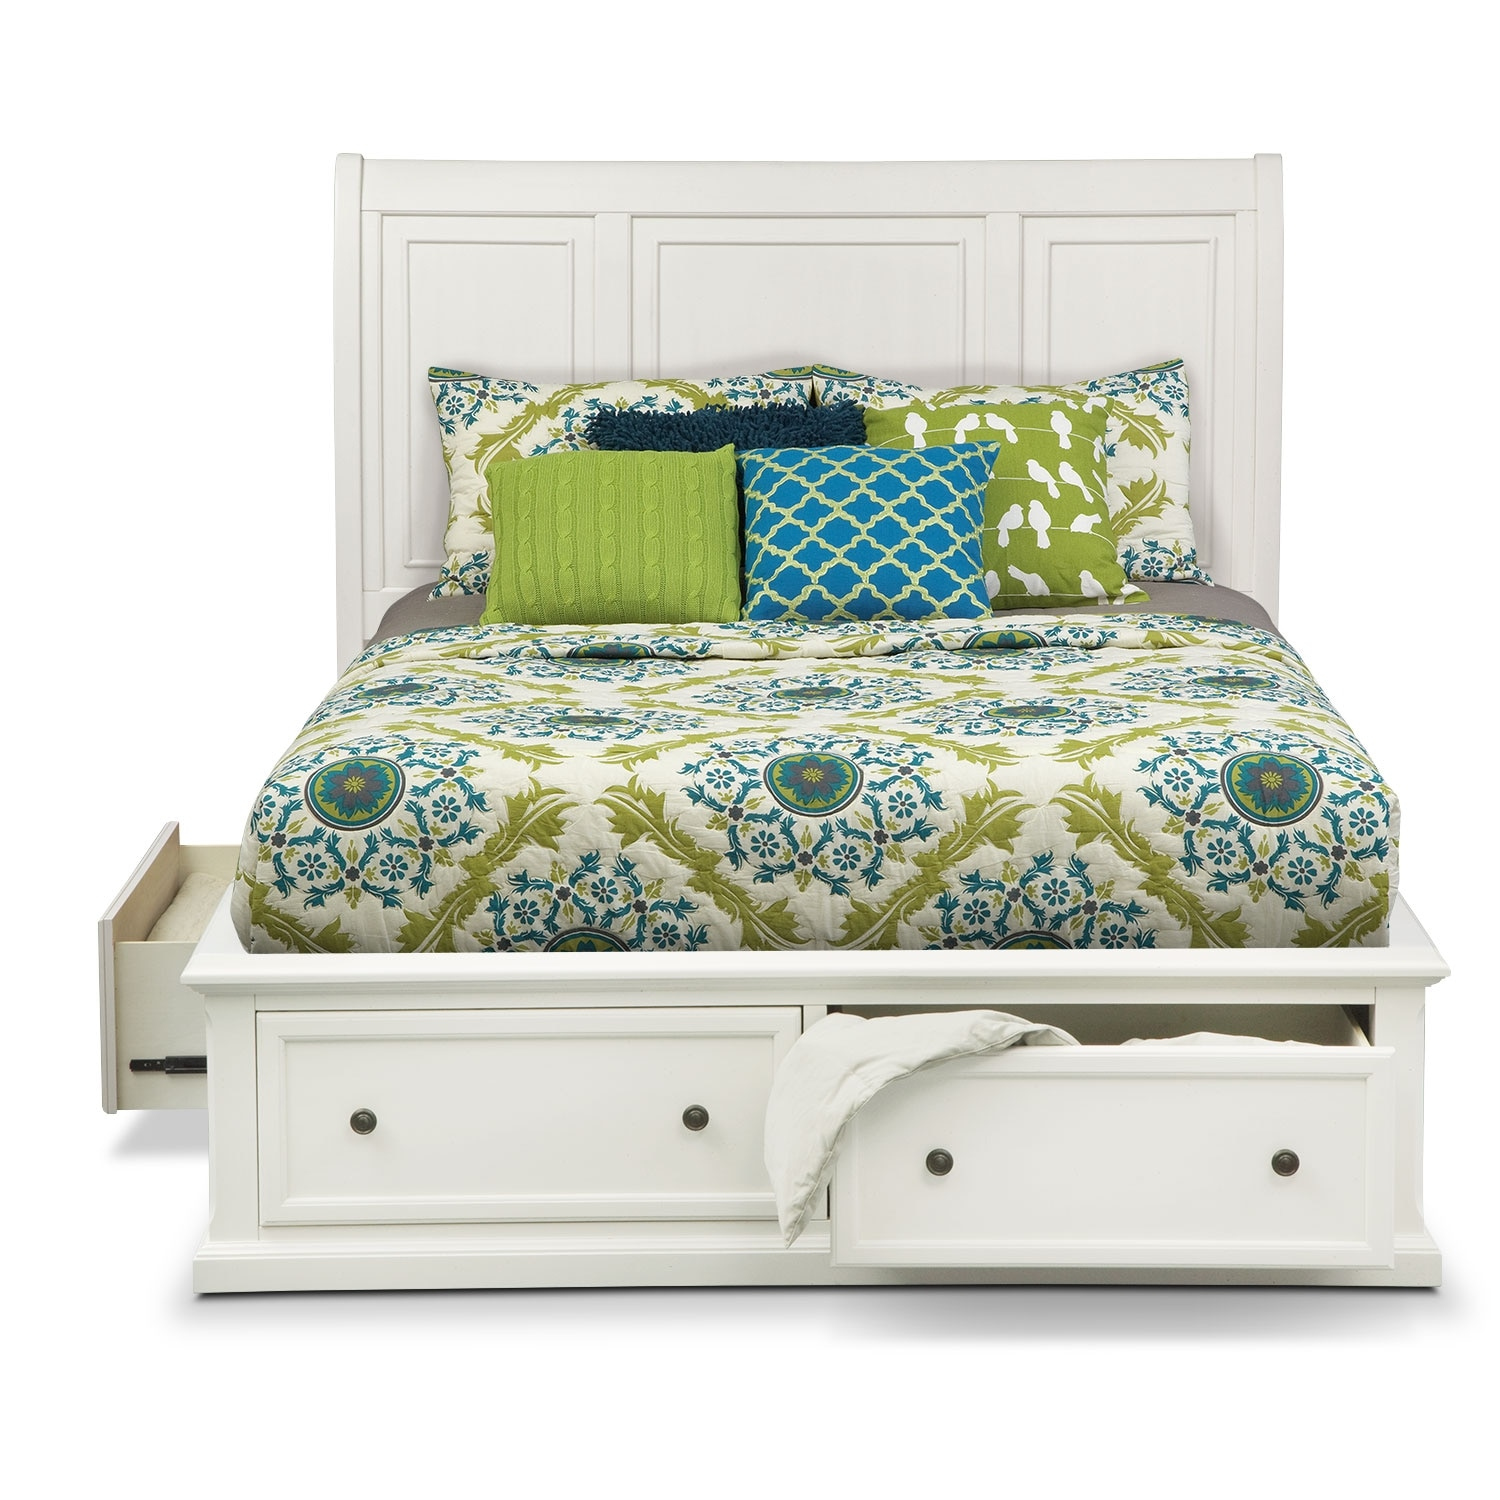 Hanover queen storage bed white value city furniture for Bedroom set and mattress